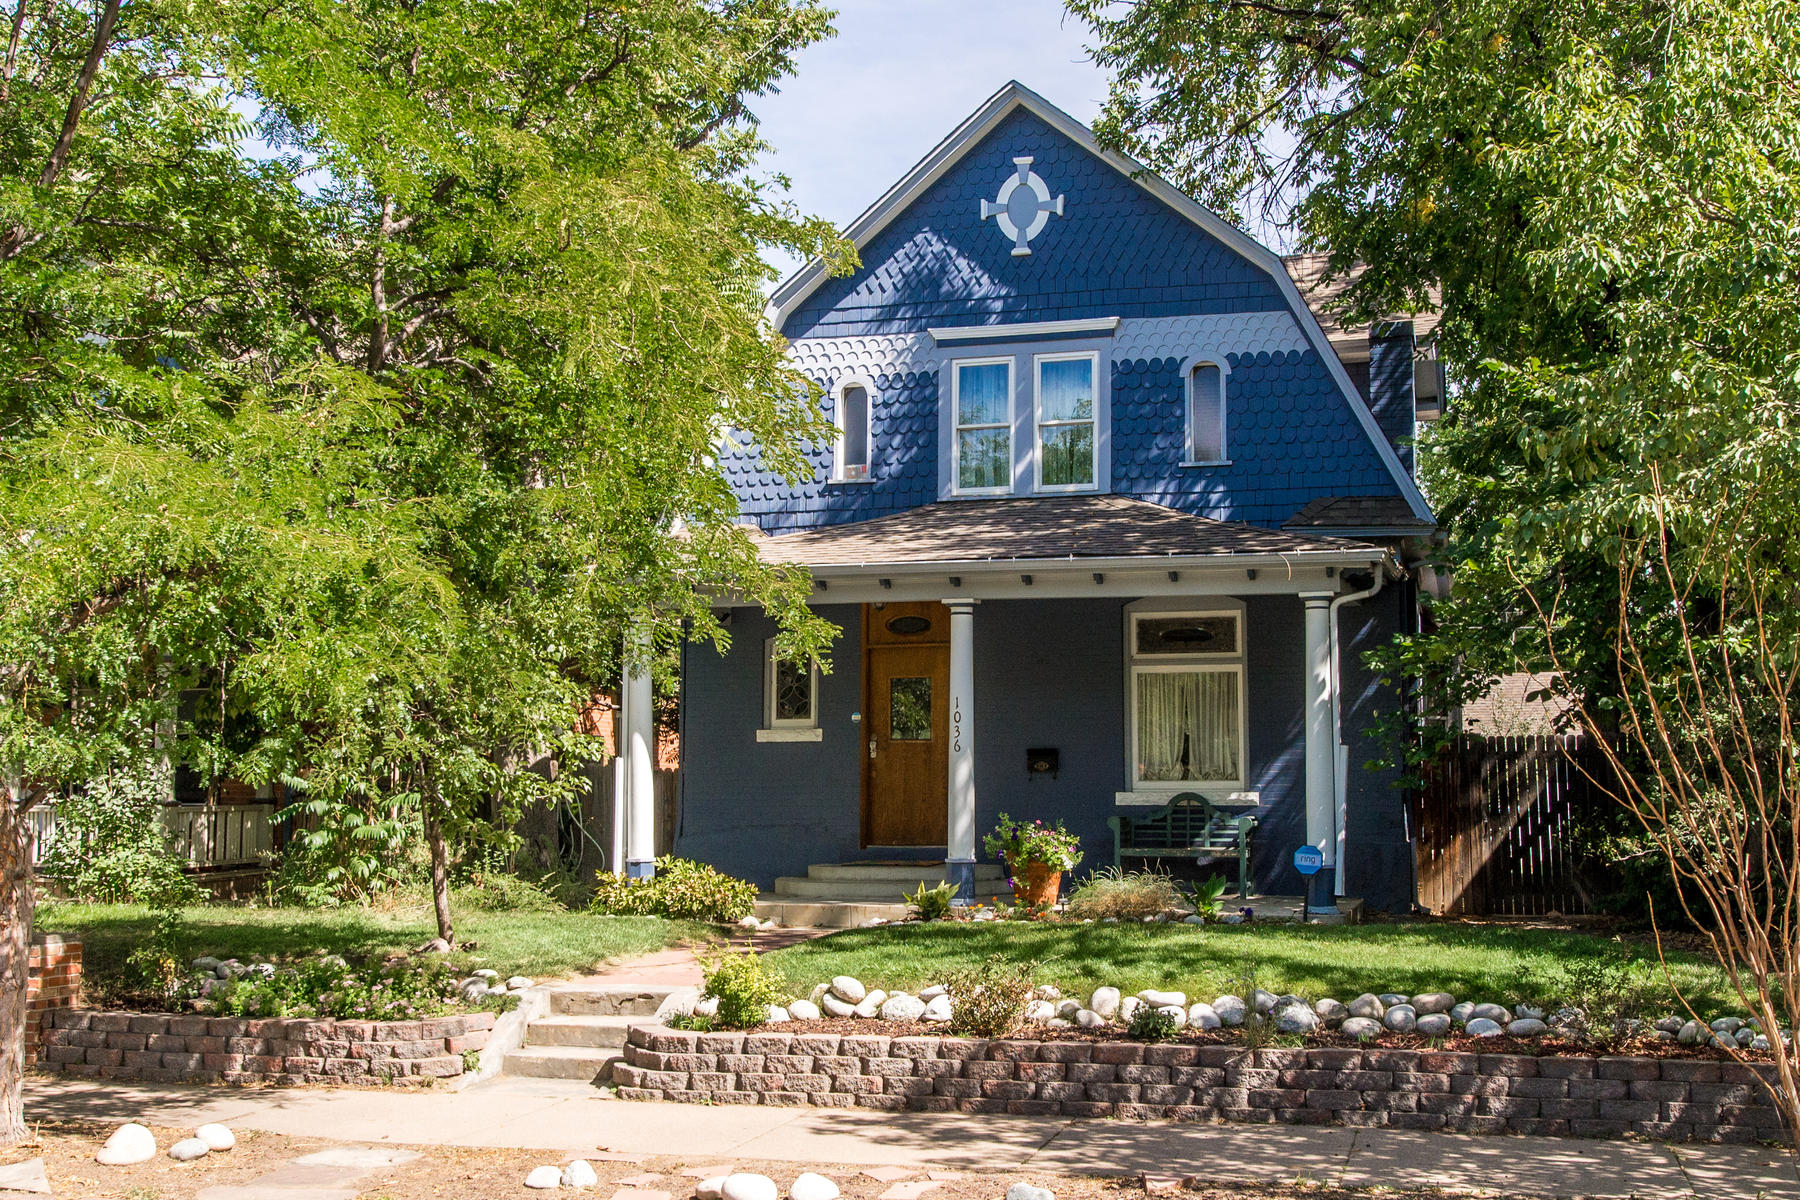 Additional photo for property listing at Turn Of The Century Victorian Charmer Perfectly Situated In Washington Park West 1036 South Pearl Street Denver, Colorado 80209 United States